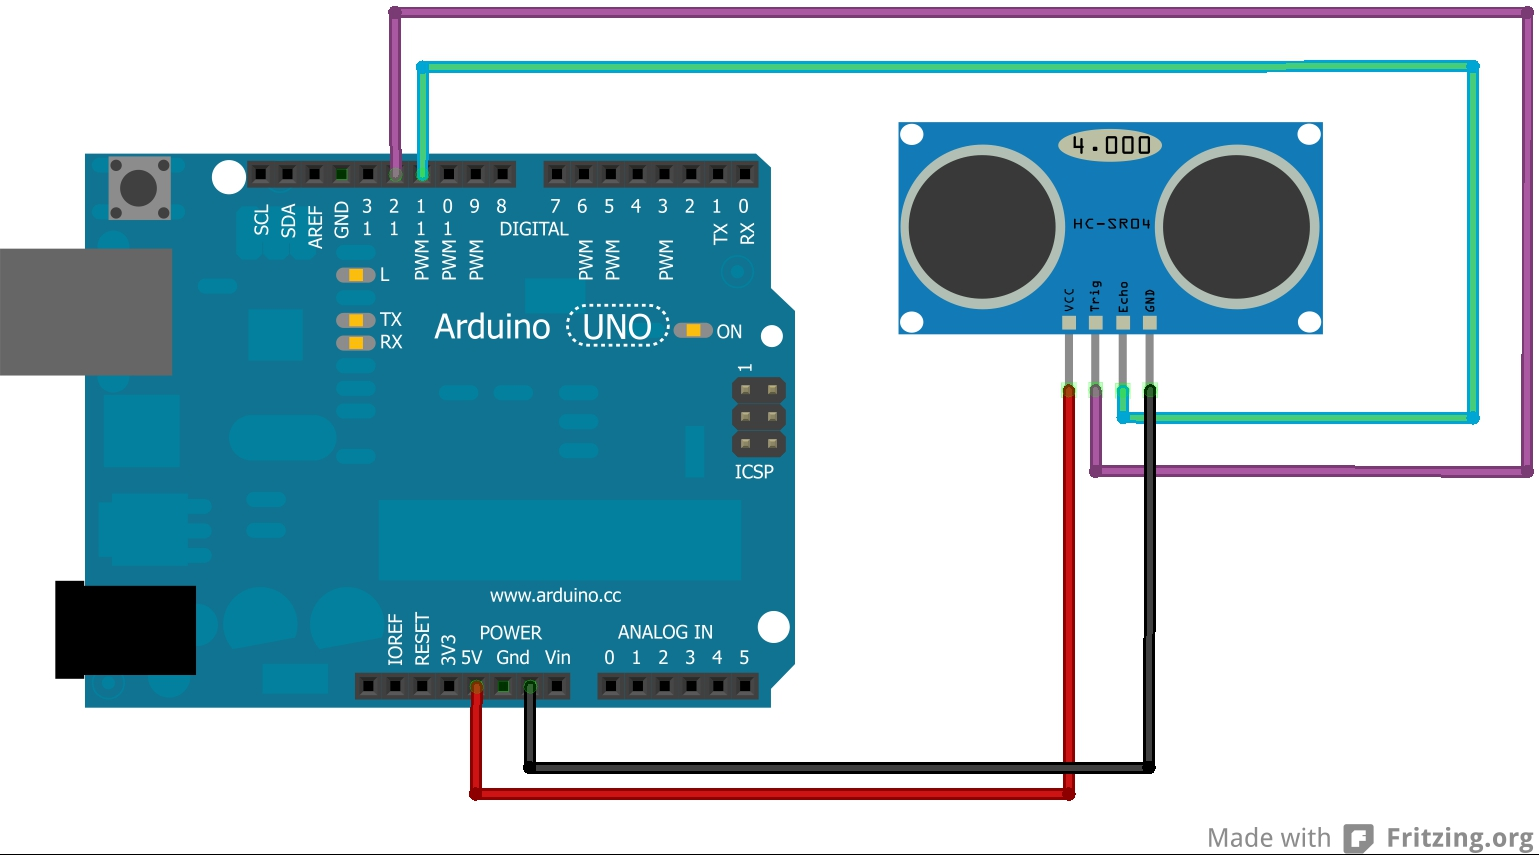 Vinctronics Hc Sr04 Ultrasonic Sensor Topic Ssr Solid State Relay And Arduino Uno Read 2938 Times An Error Occurred